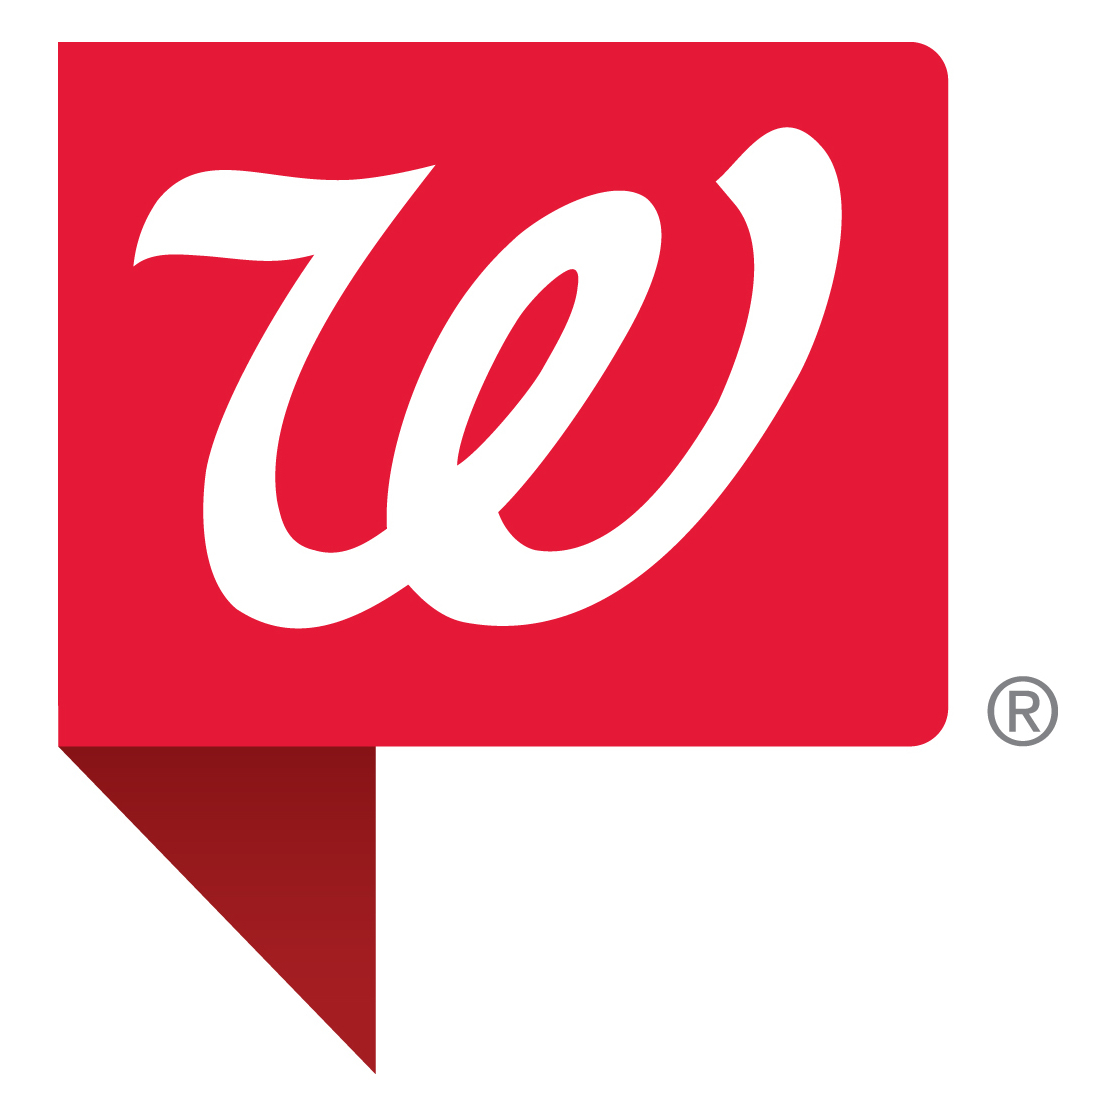 Walgreens - Norcross, GA - Pharmacist